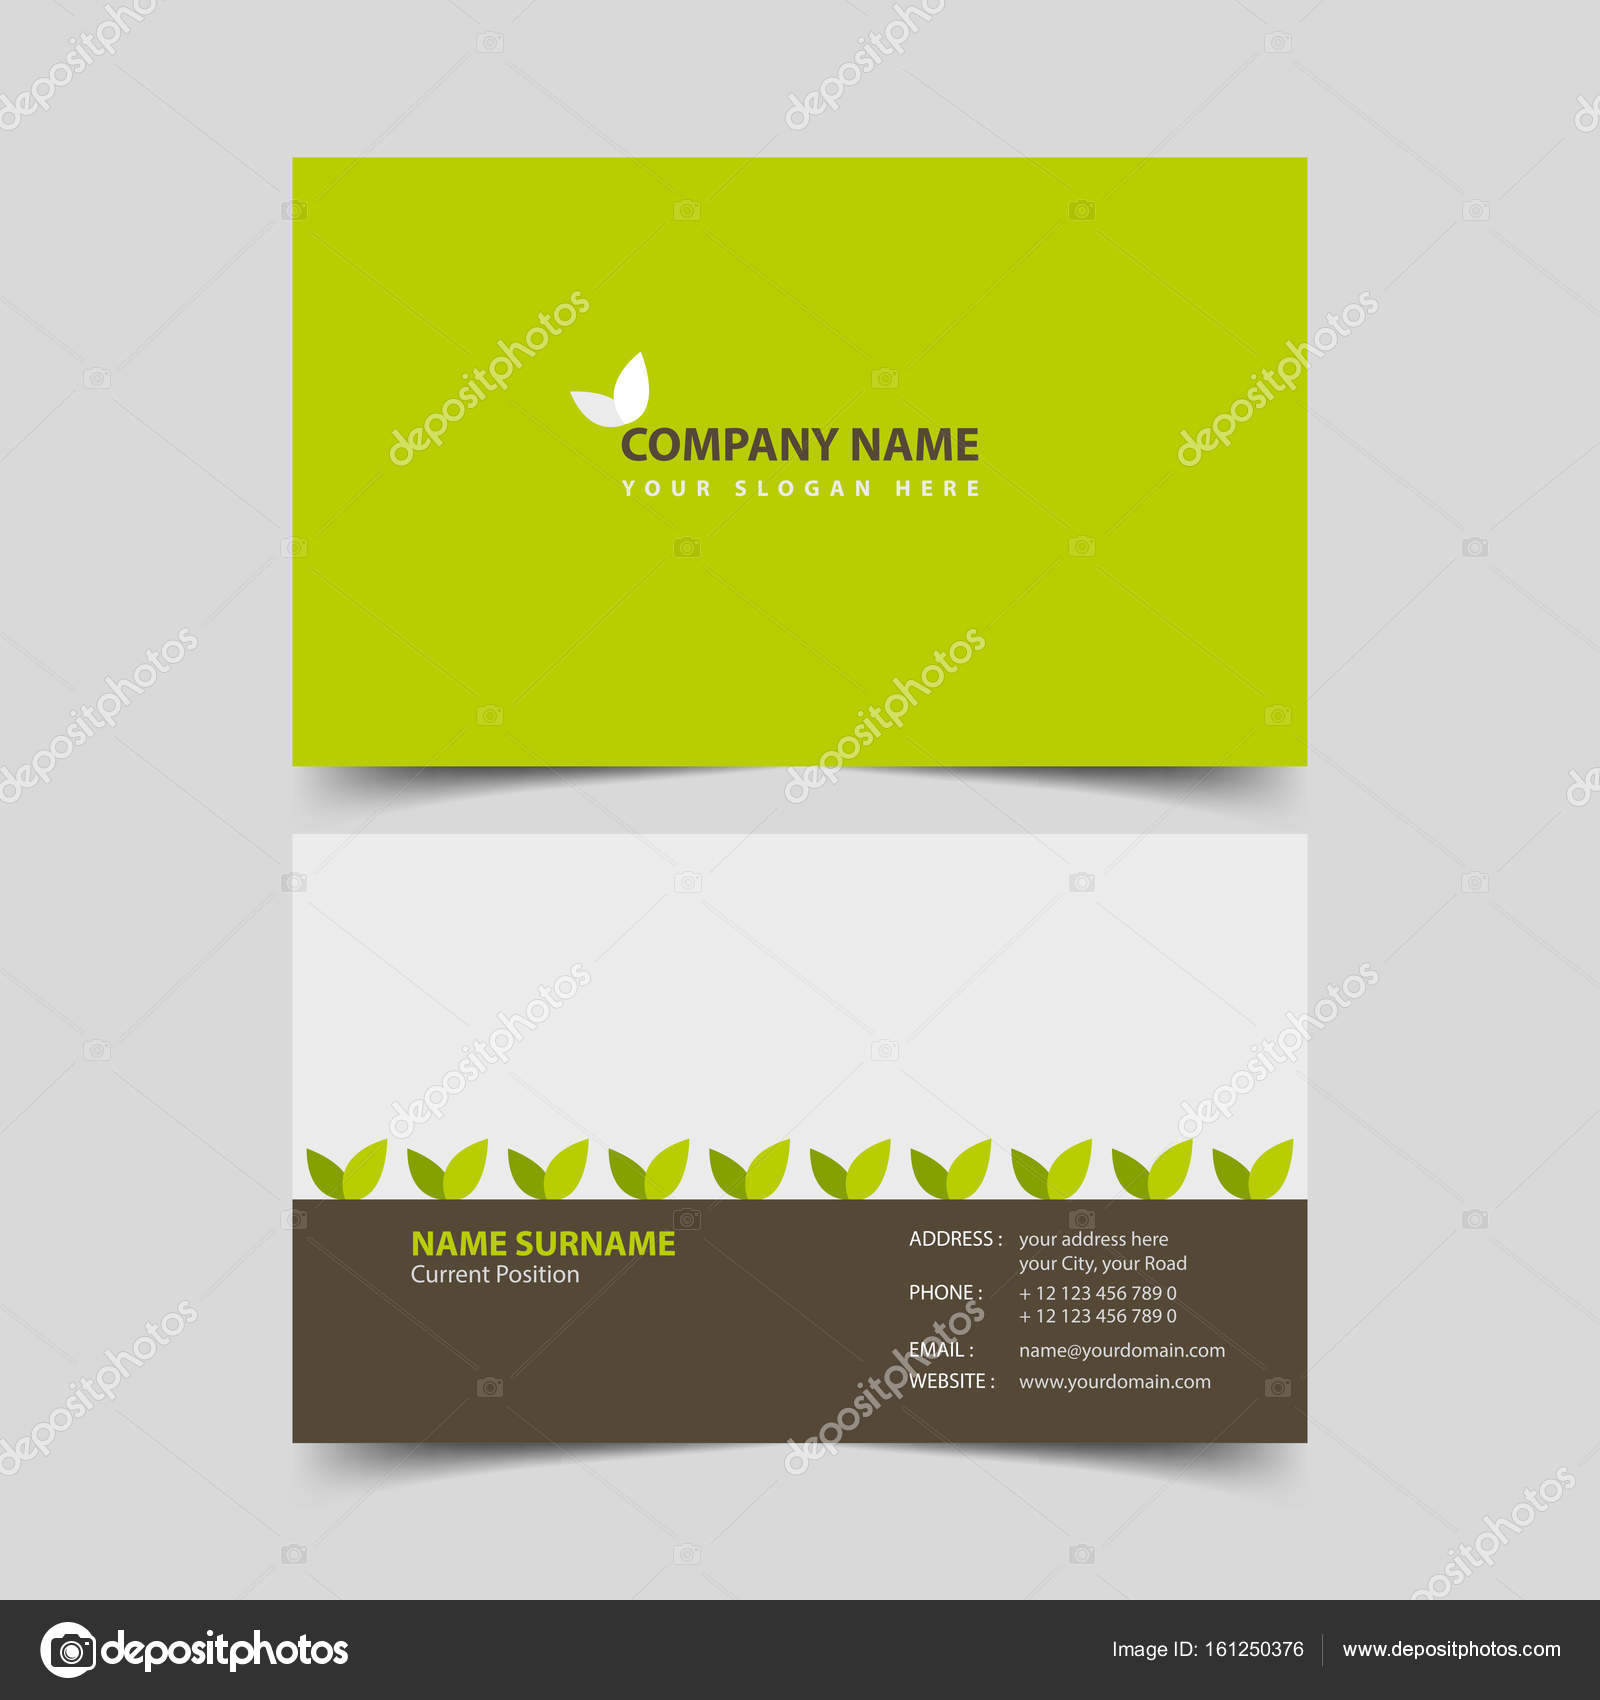 Eco friendly business card design template. — Stock Vector ...